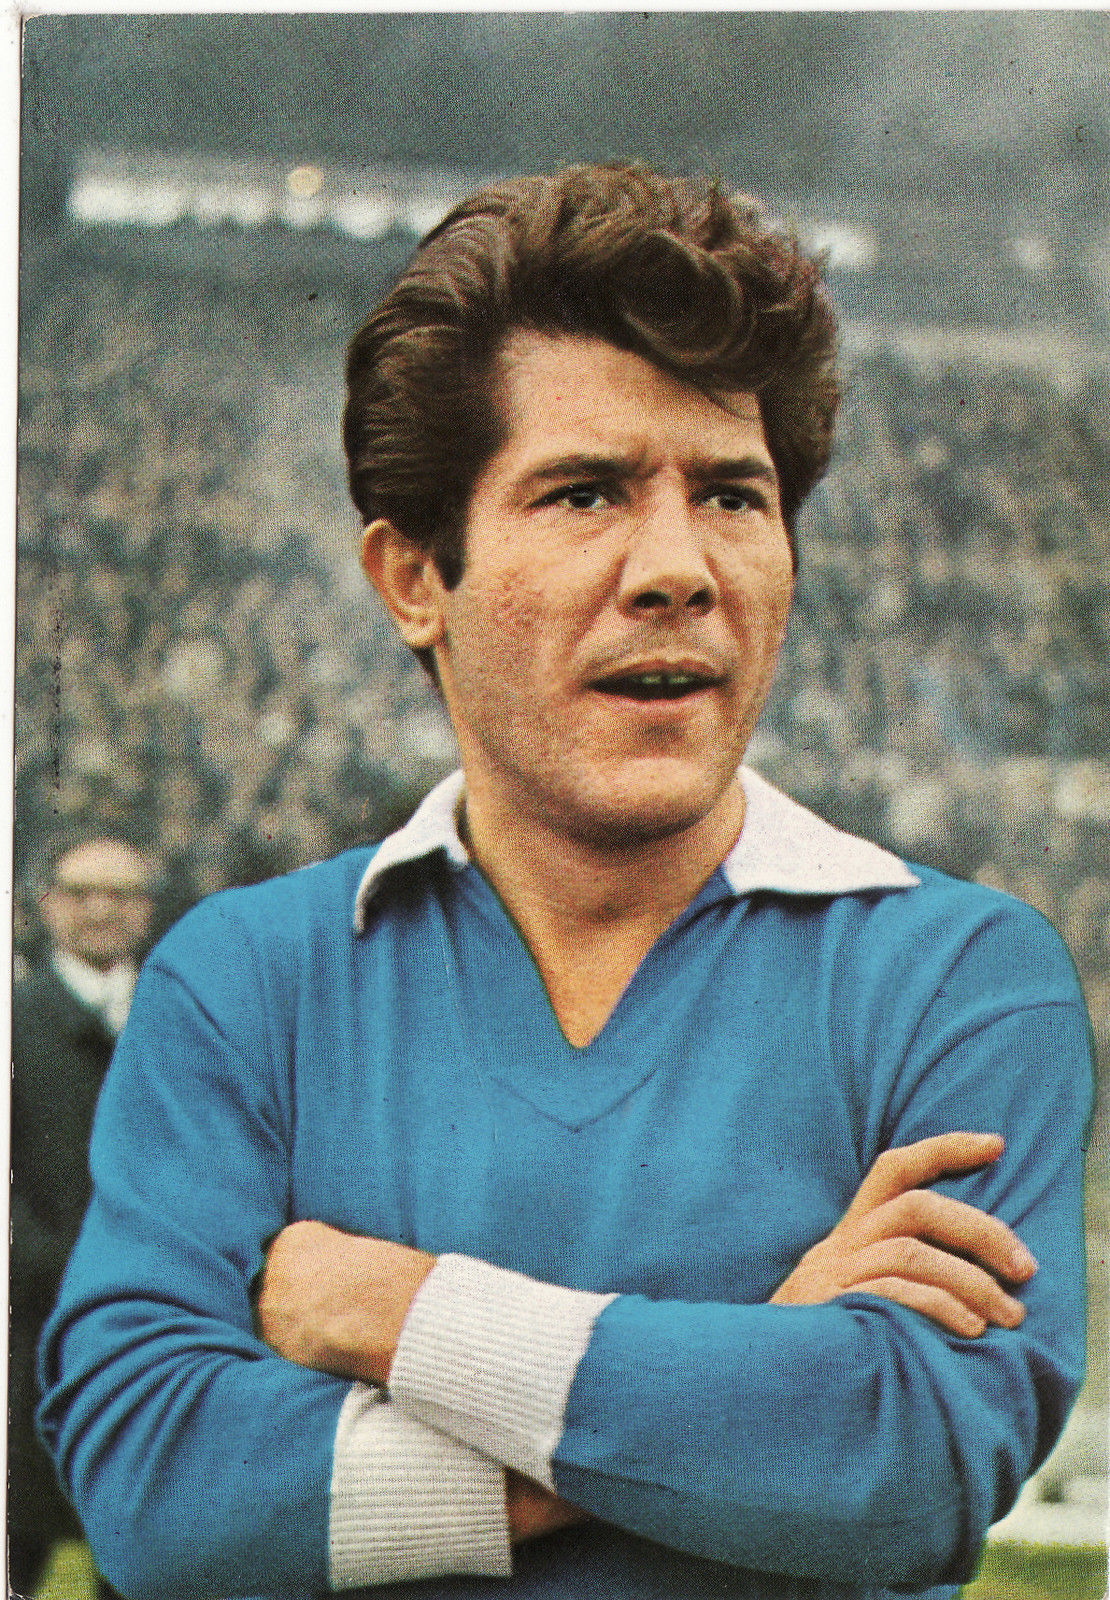 Regarded as one of the greatest players of his generation, Sívori's footballing talent was widely acclaimed, and he won the coveted European Footballer of the Year award in 1961.